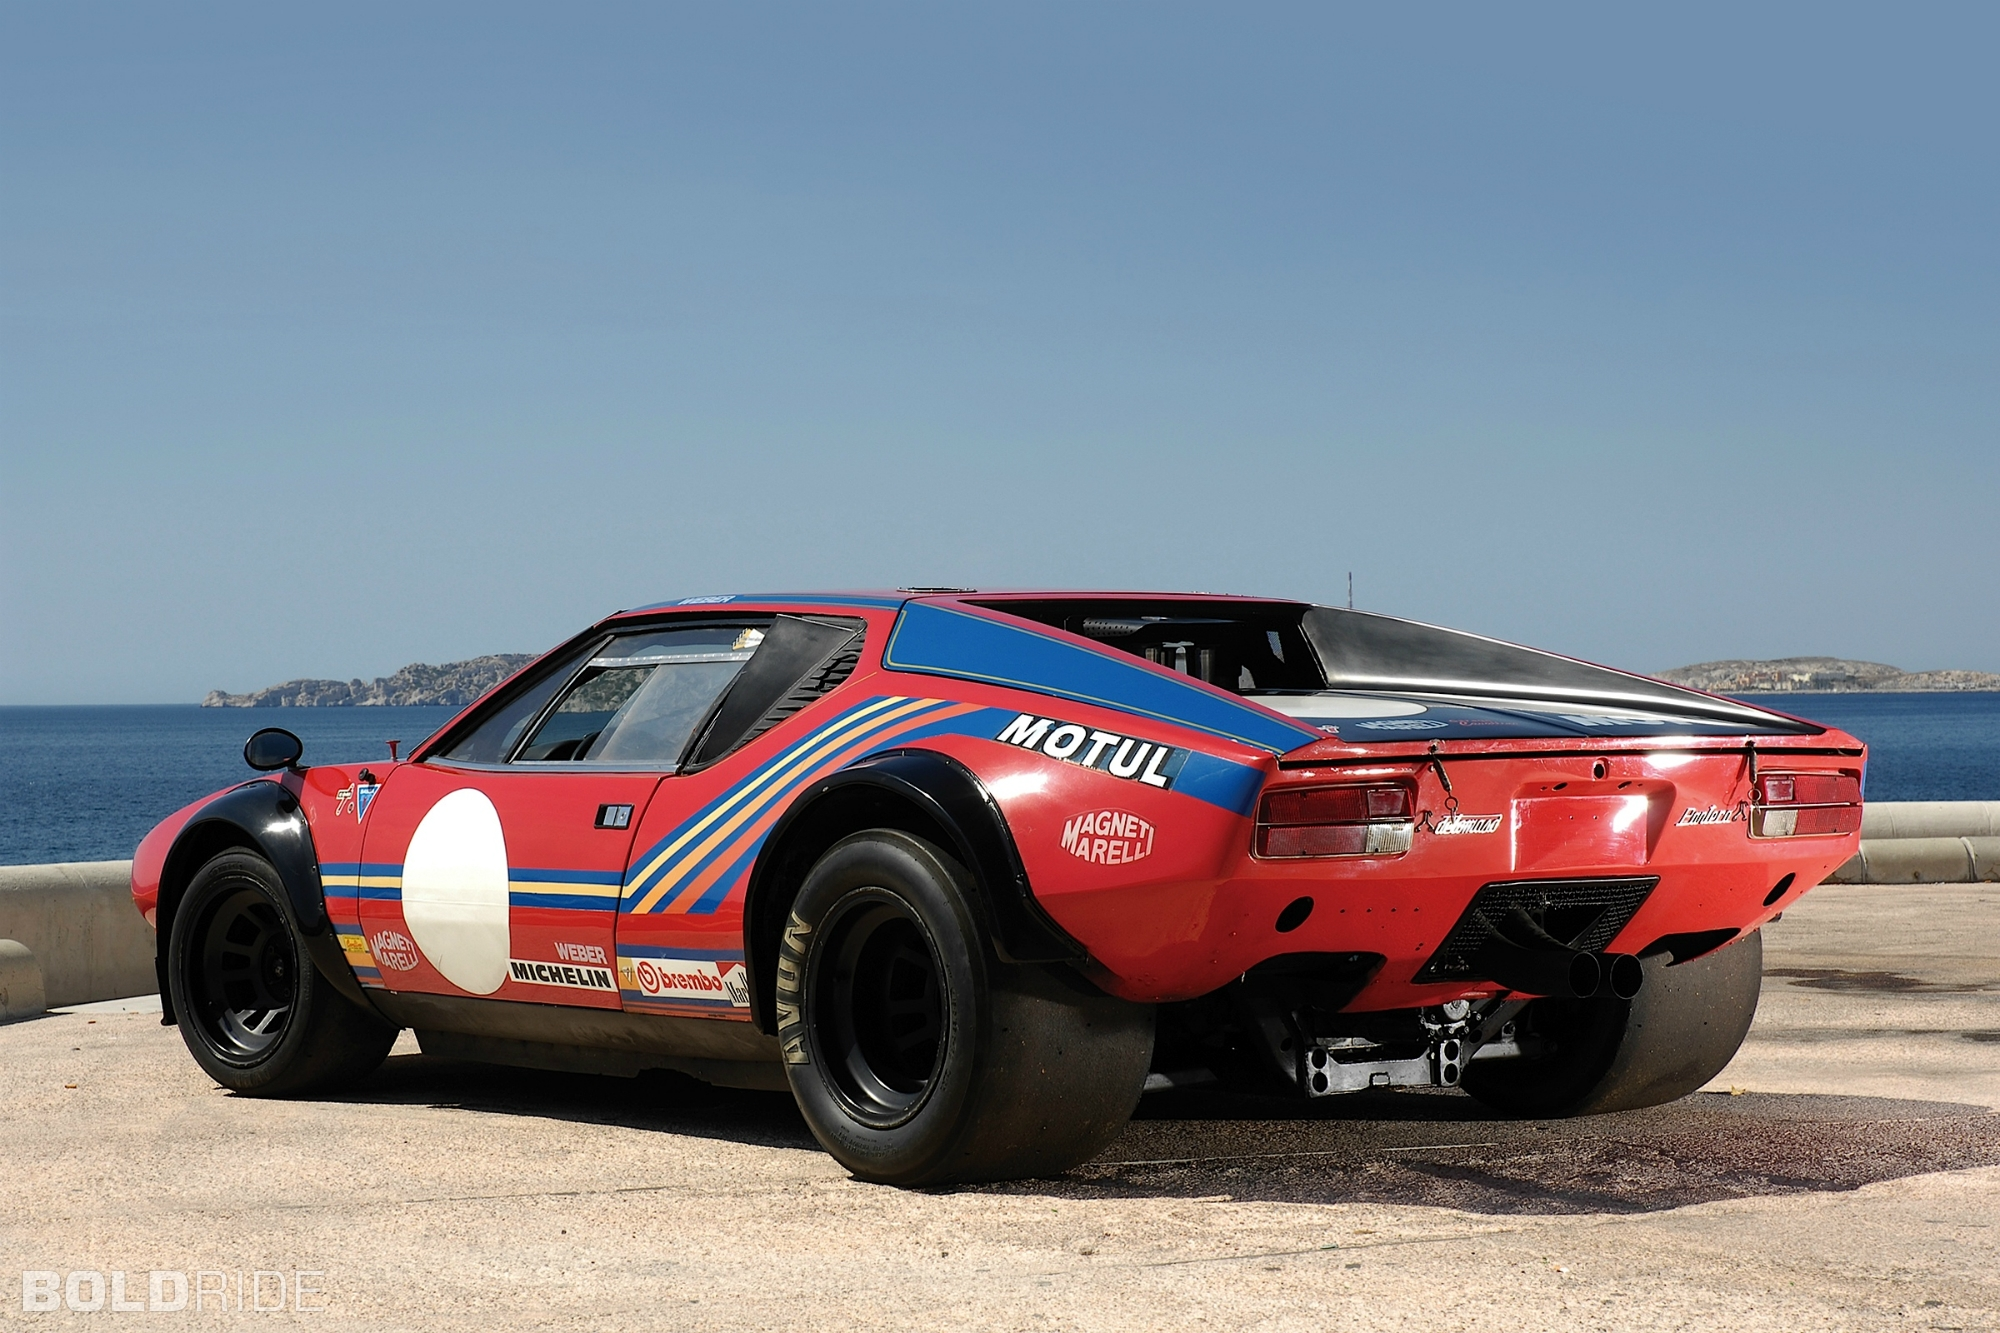 1974 De Tomaso Pantera Group 4 Competition Coupe 2000 x 1333